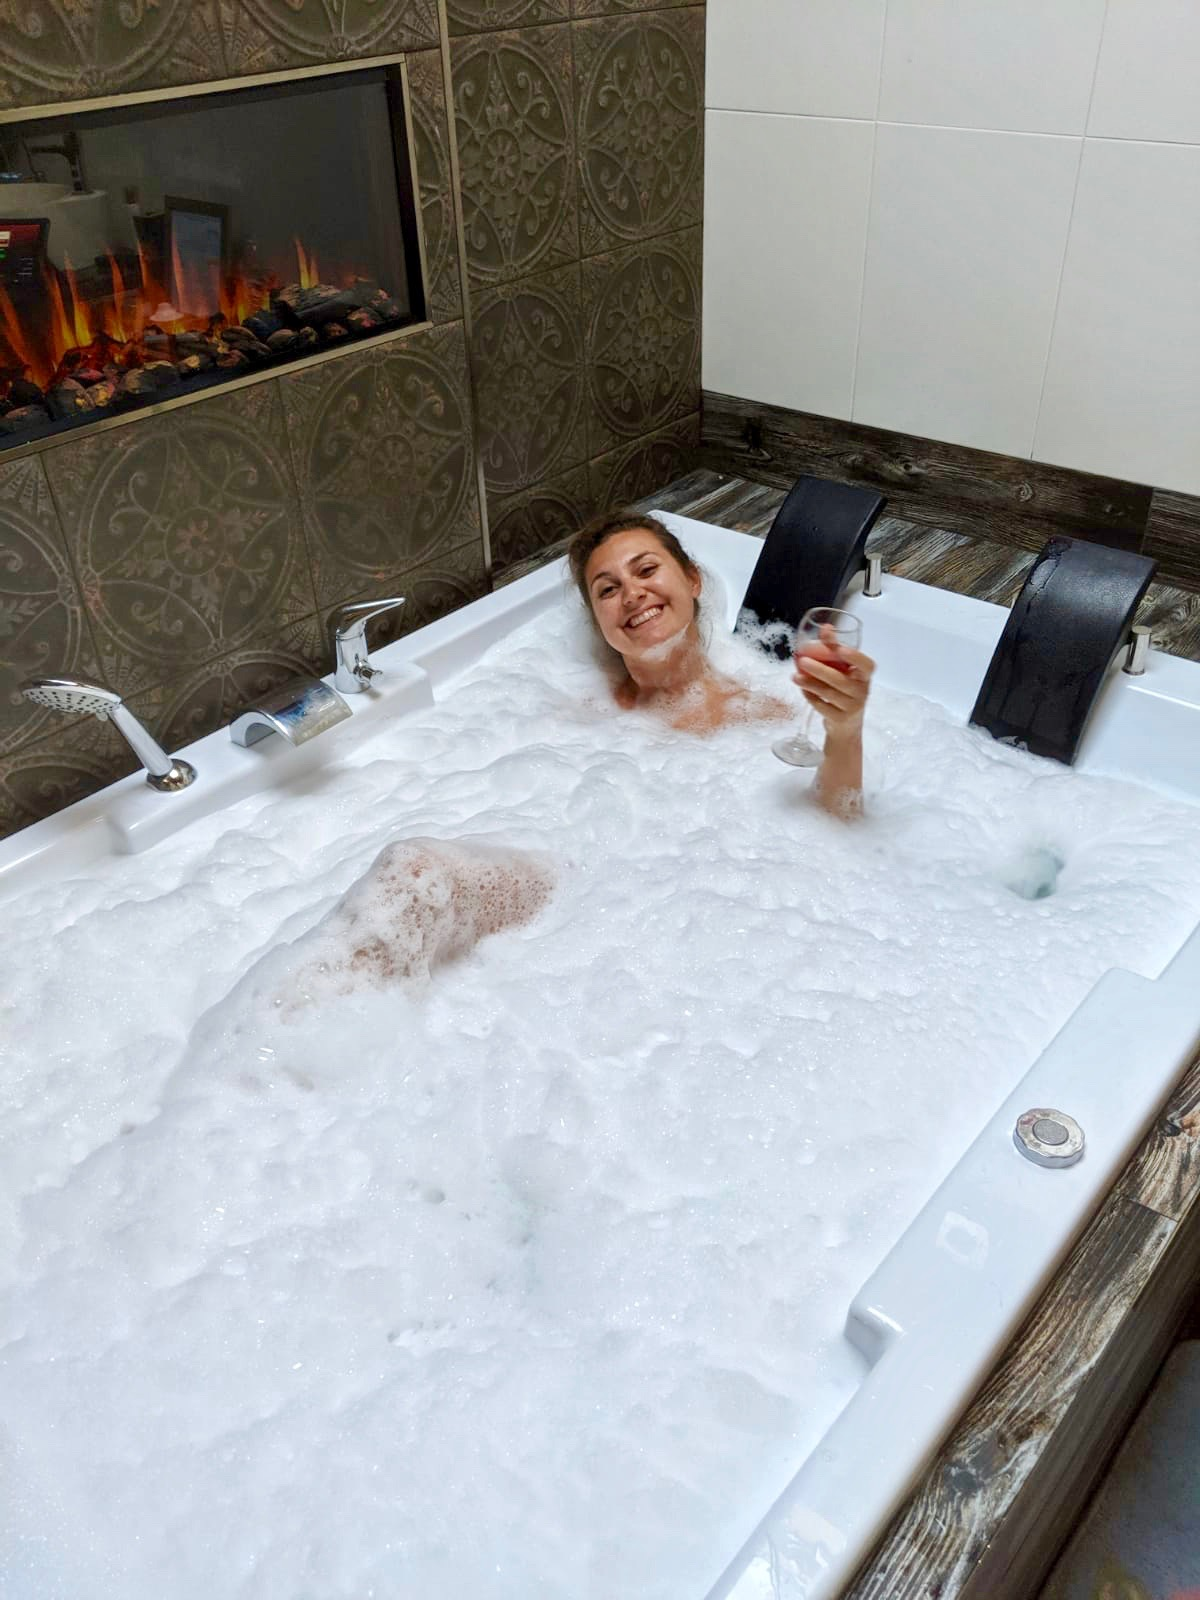 Girl in double sized jacuzzi bath holding a glass of wine. She is covered up to her neck by bubbles.